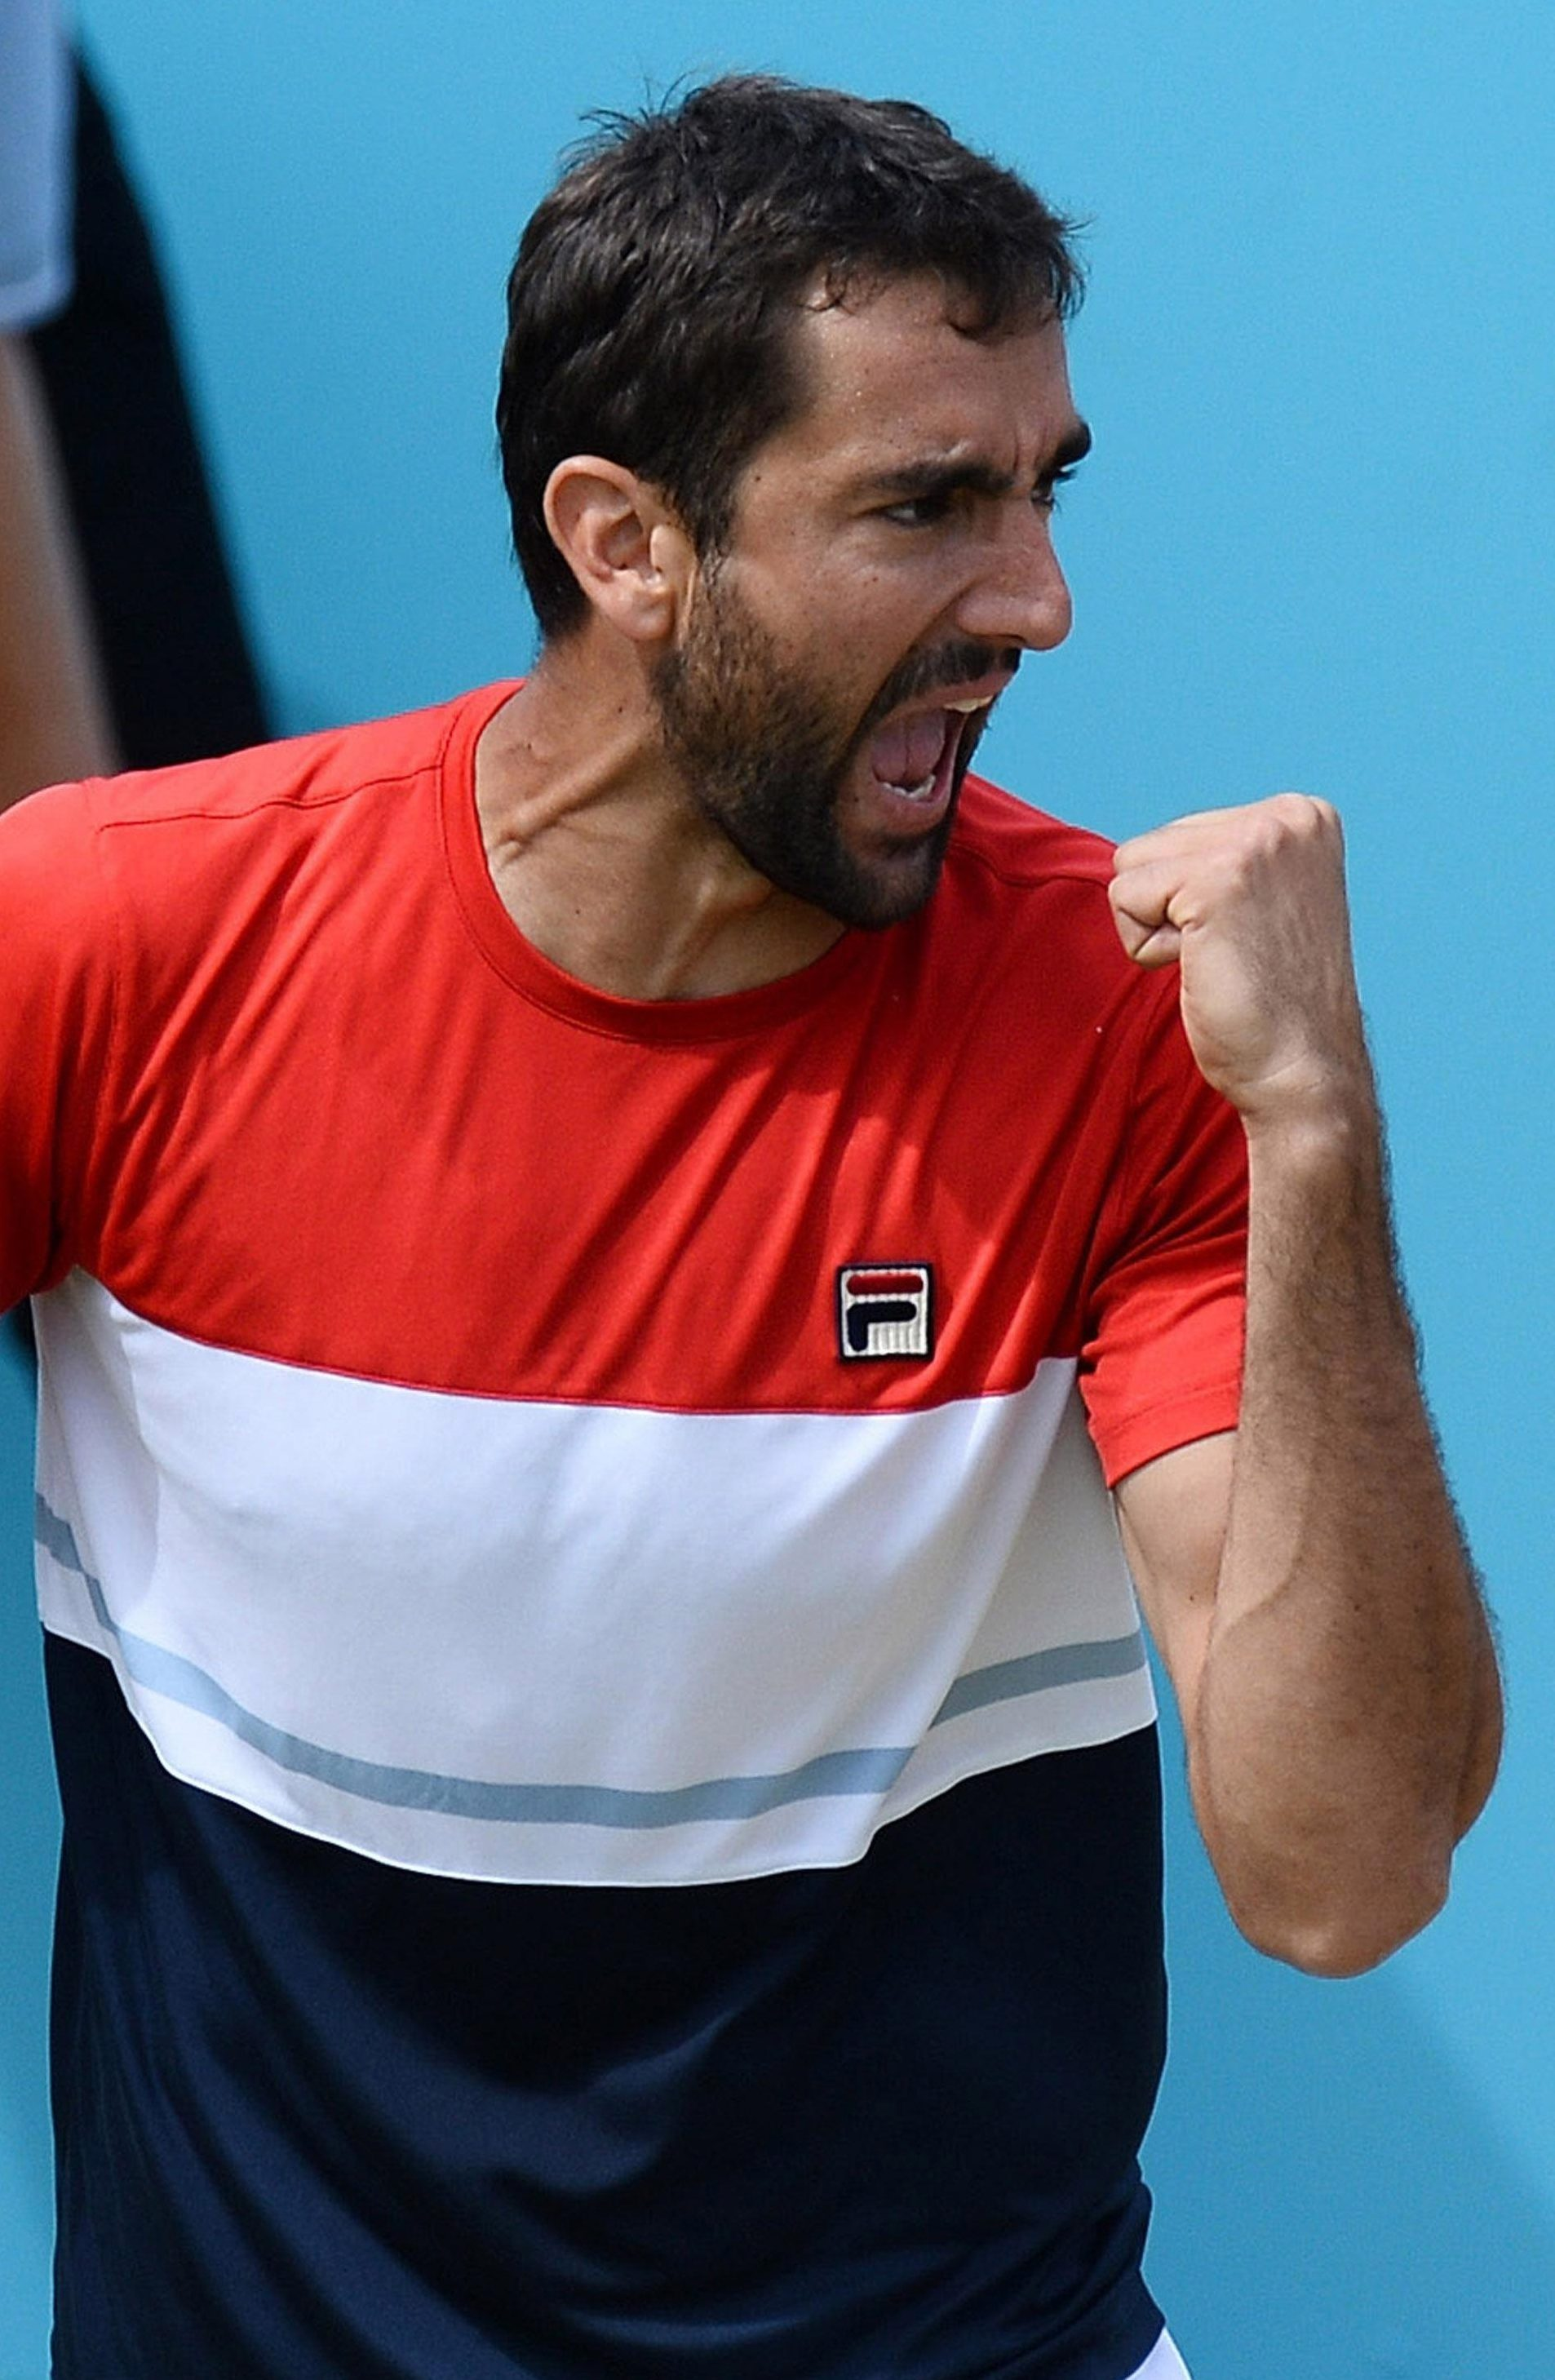 Cilic emerged the winner by playing better in the tiebreaks and looks in excellent form heading to Wimbledon